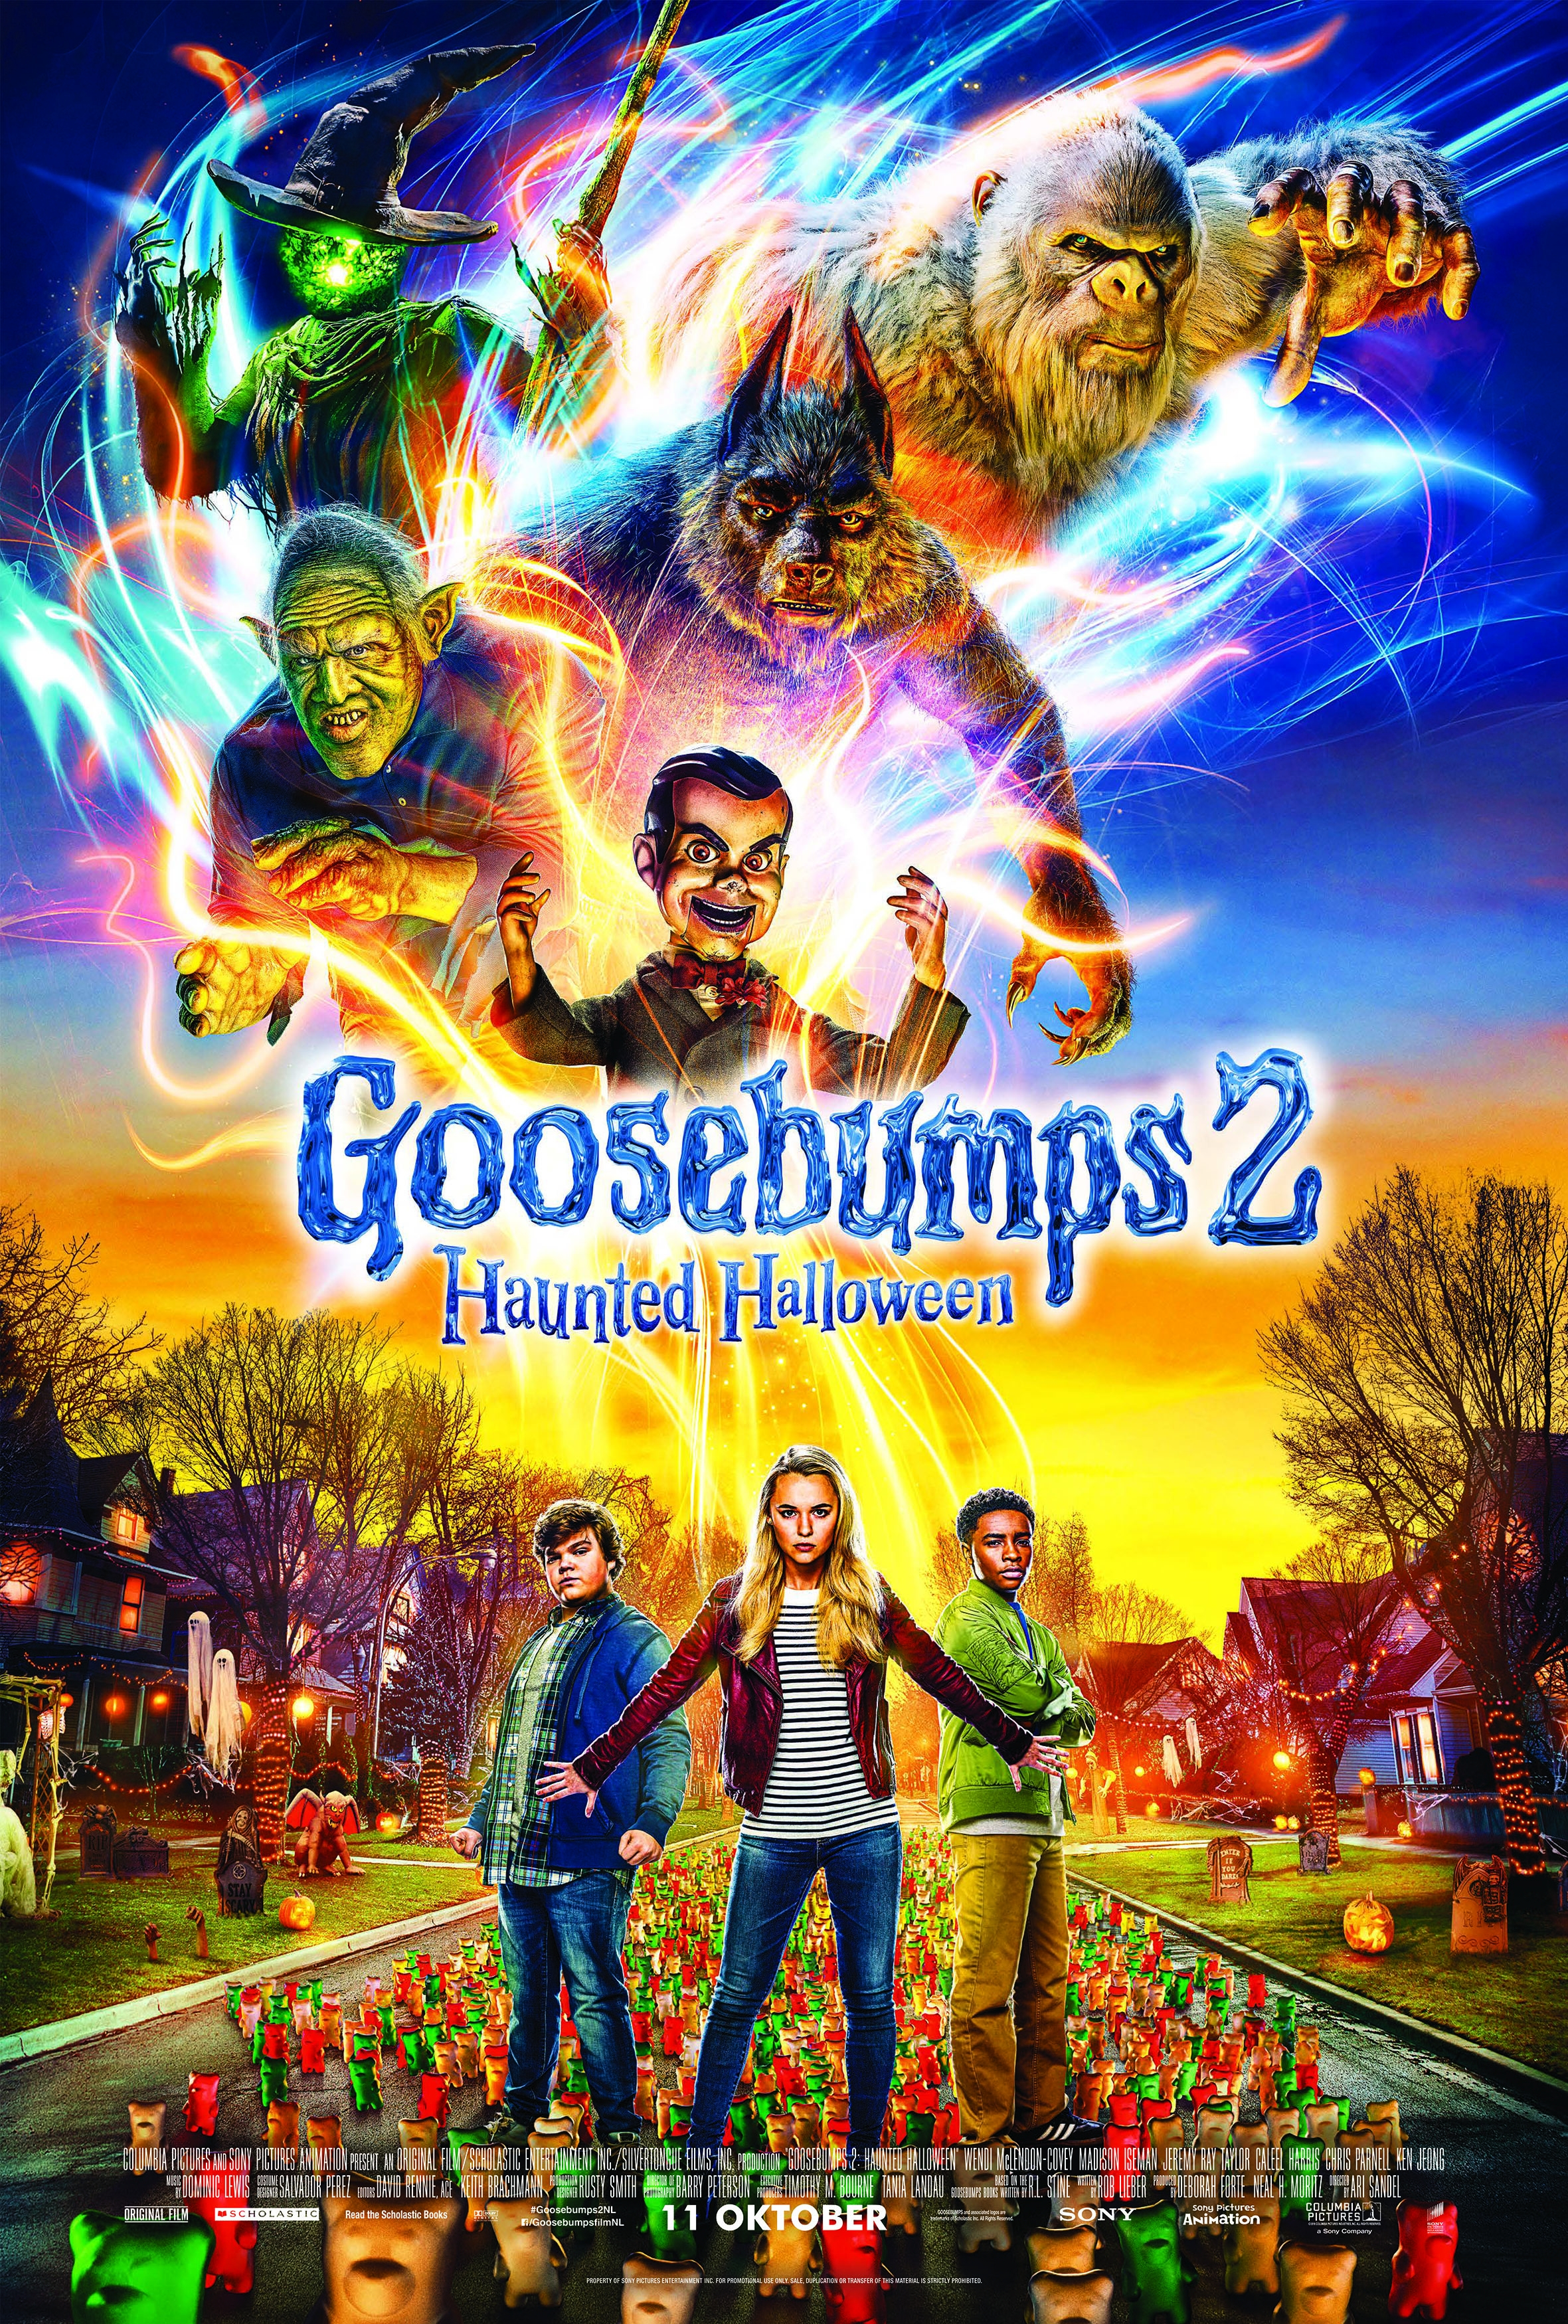 Goosebumps 2: Haunted Halloween poster, © 2018 Universal Pictures International